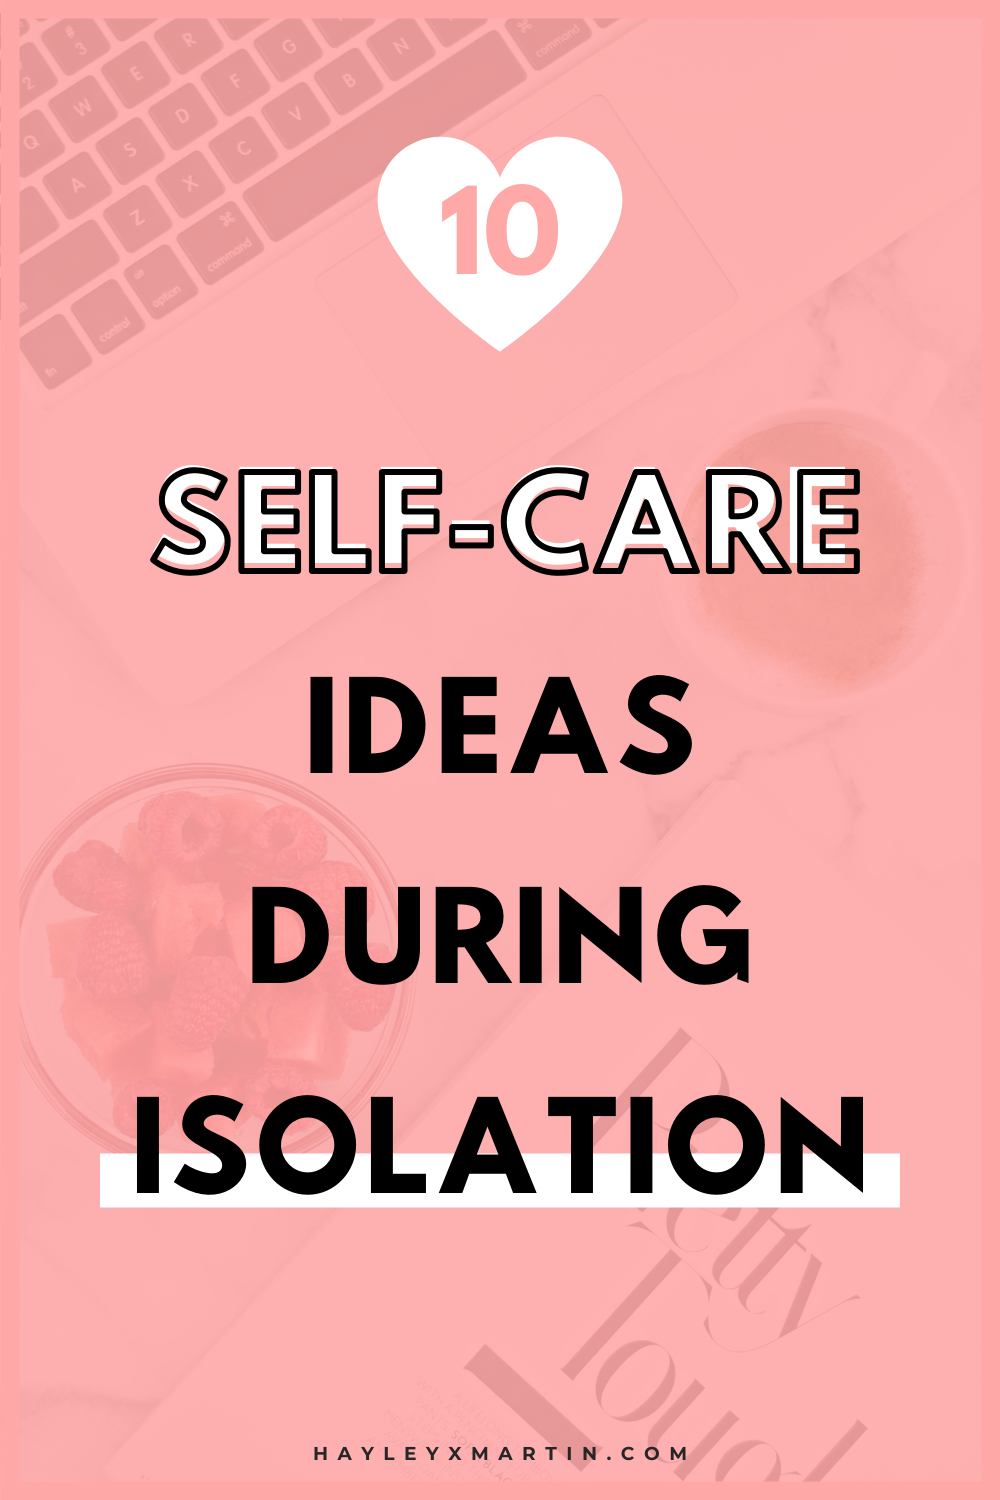 10 self-care ideas during isolation | HAYLEYXMARTIN